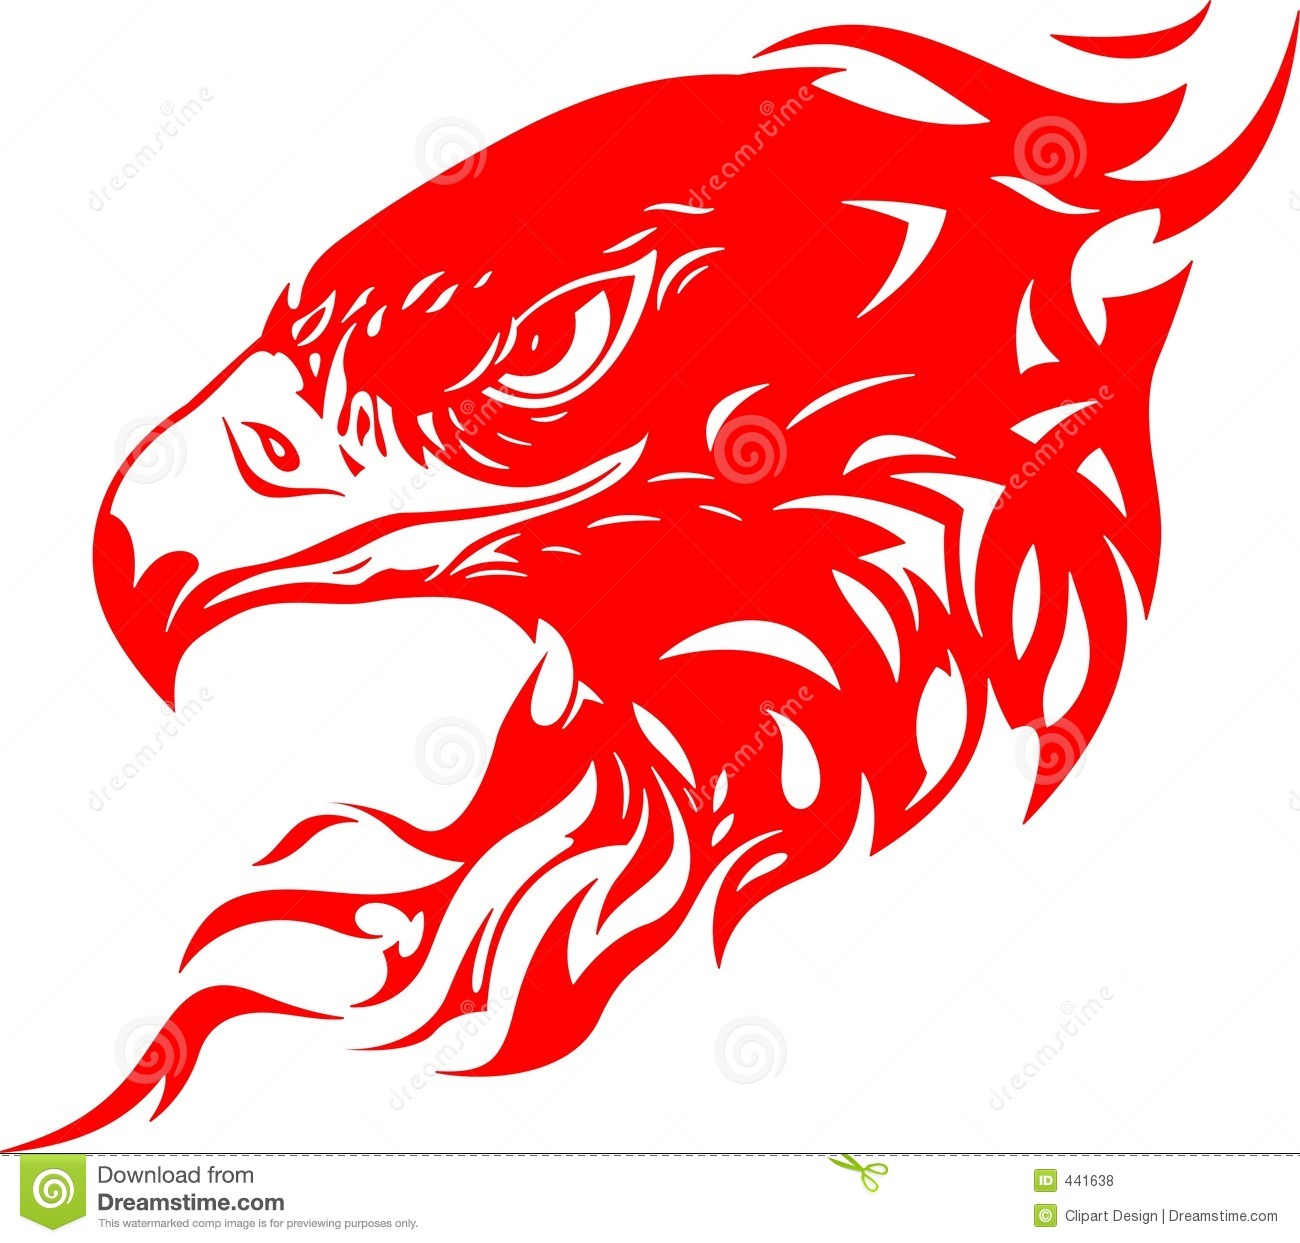 Flaming Eagle Head 1 Royalty Free Stock Photos - Image: 441638 Eagle Silhouette Vector